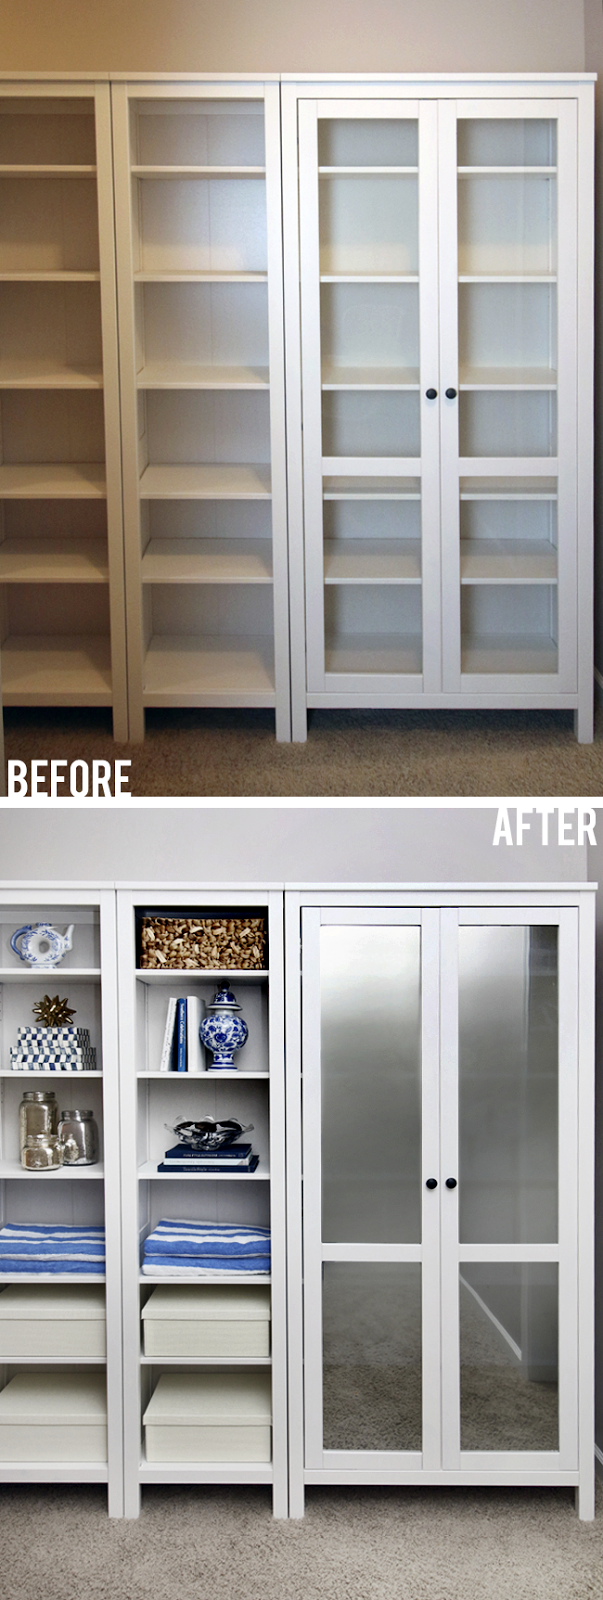 Diy Mirrored Cabinet Doors Ikea Glasses Glass Front Cabinets And